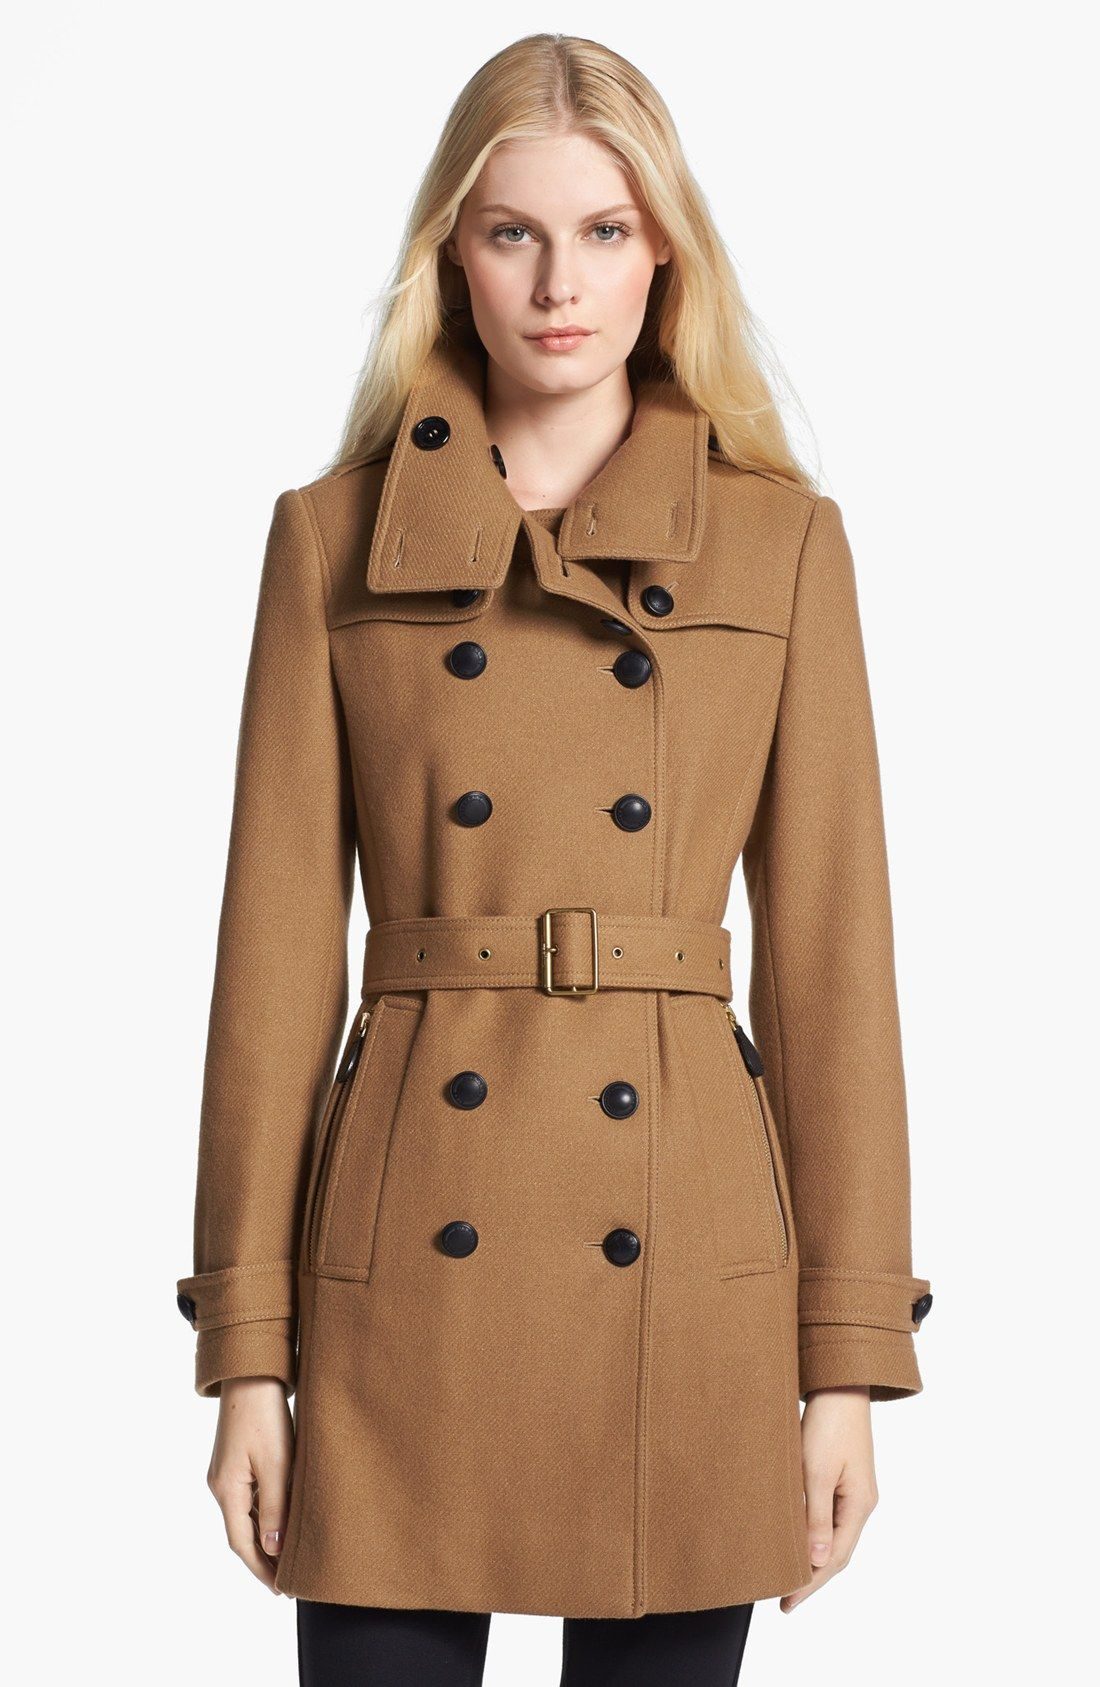 Burberry Brit Daylesmoore Wool Blend Trench Coat For Women   Fashideas.com e6fa9fde6cd3